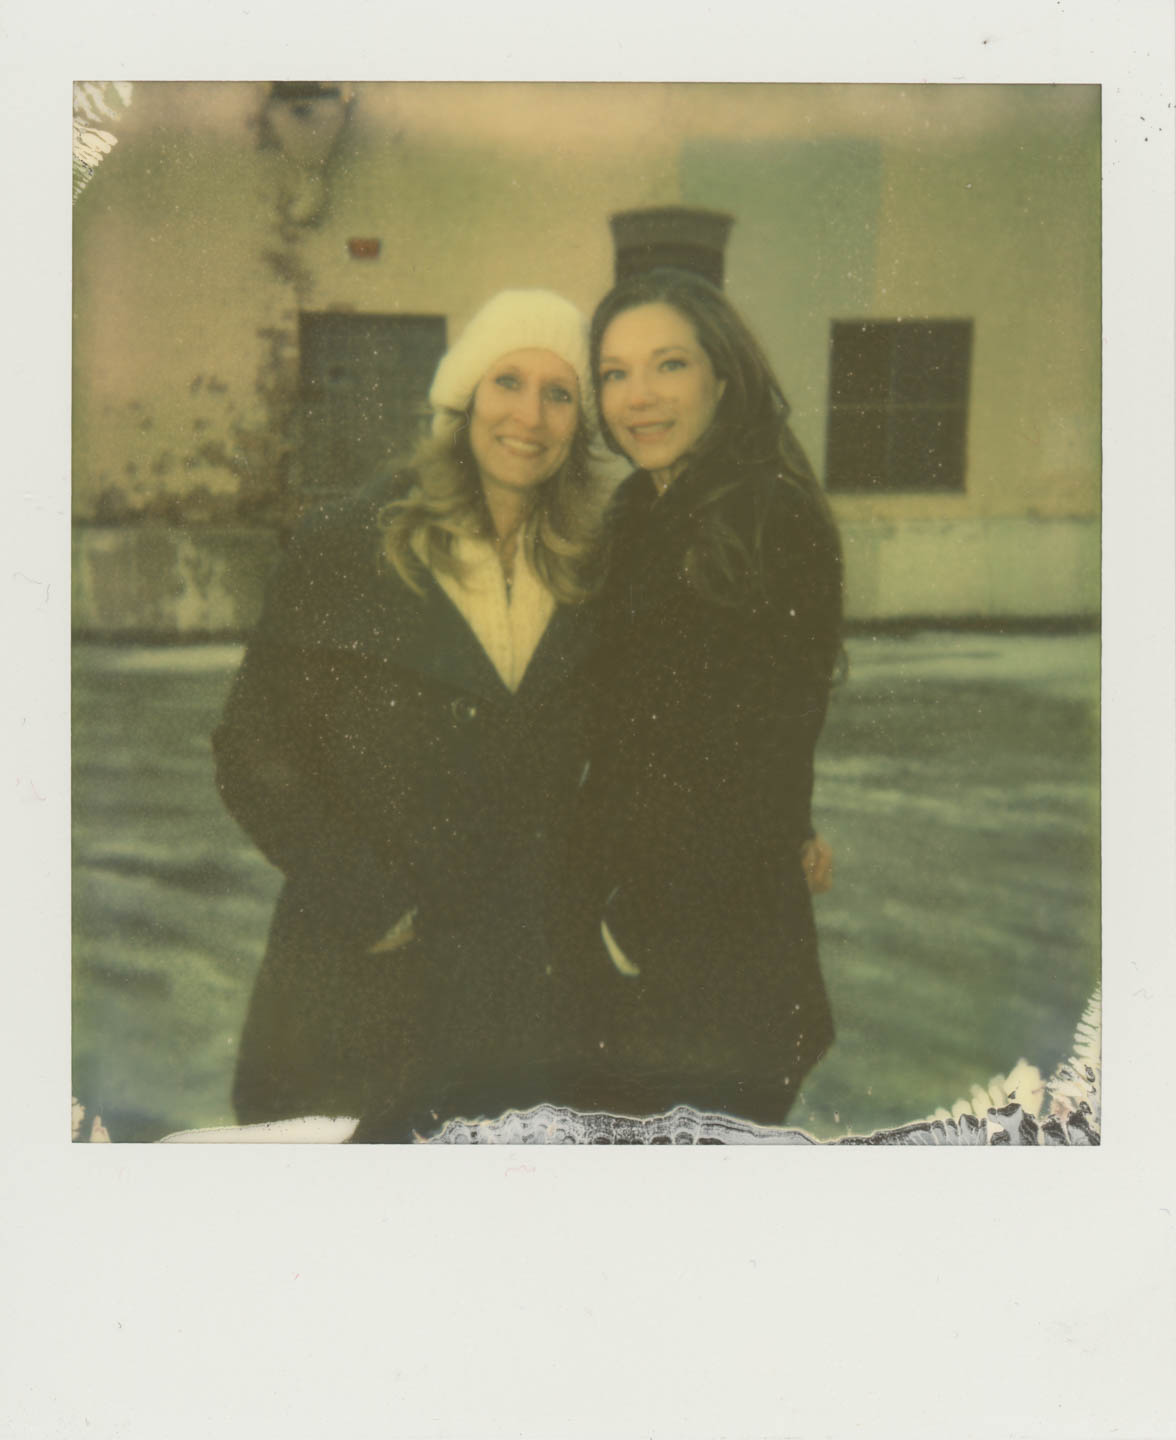 Polaroid photo!